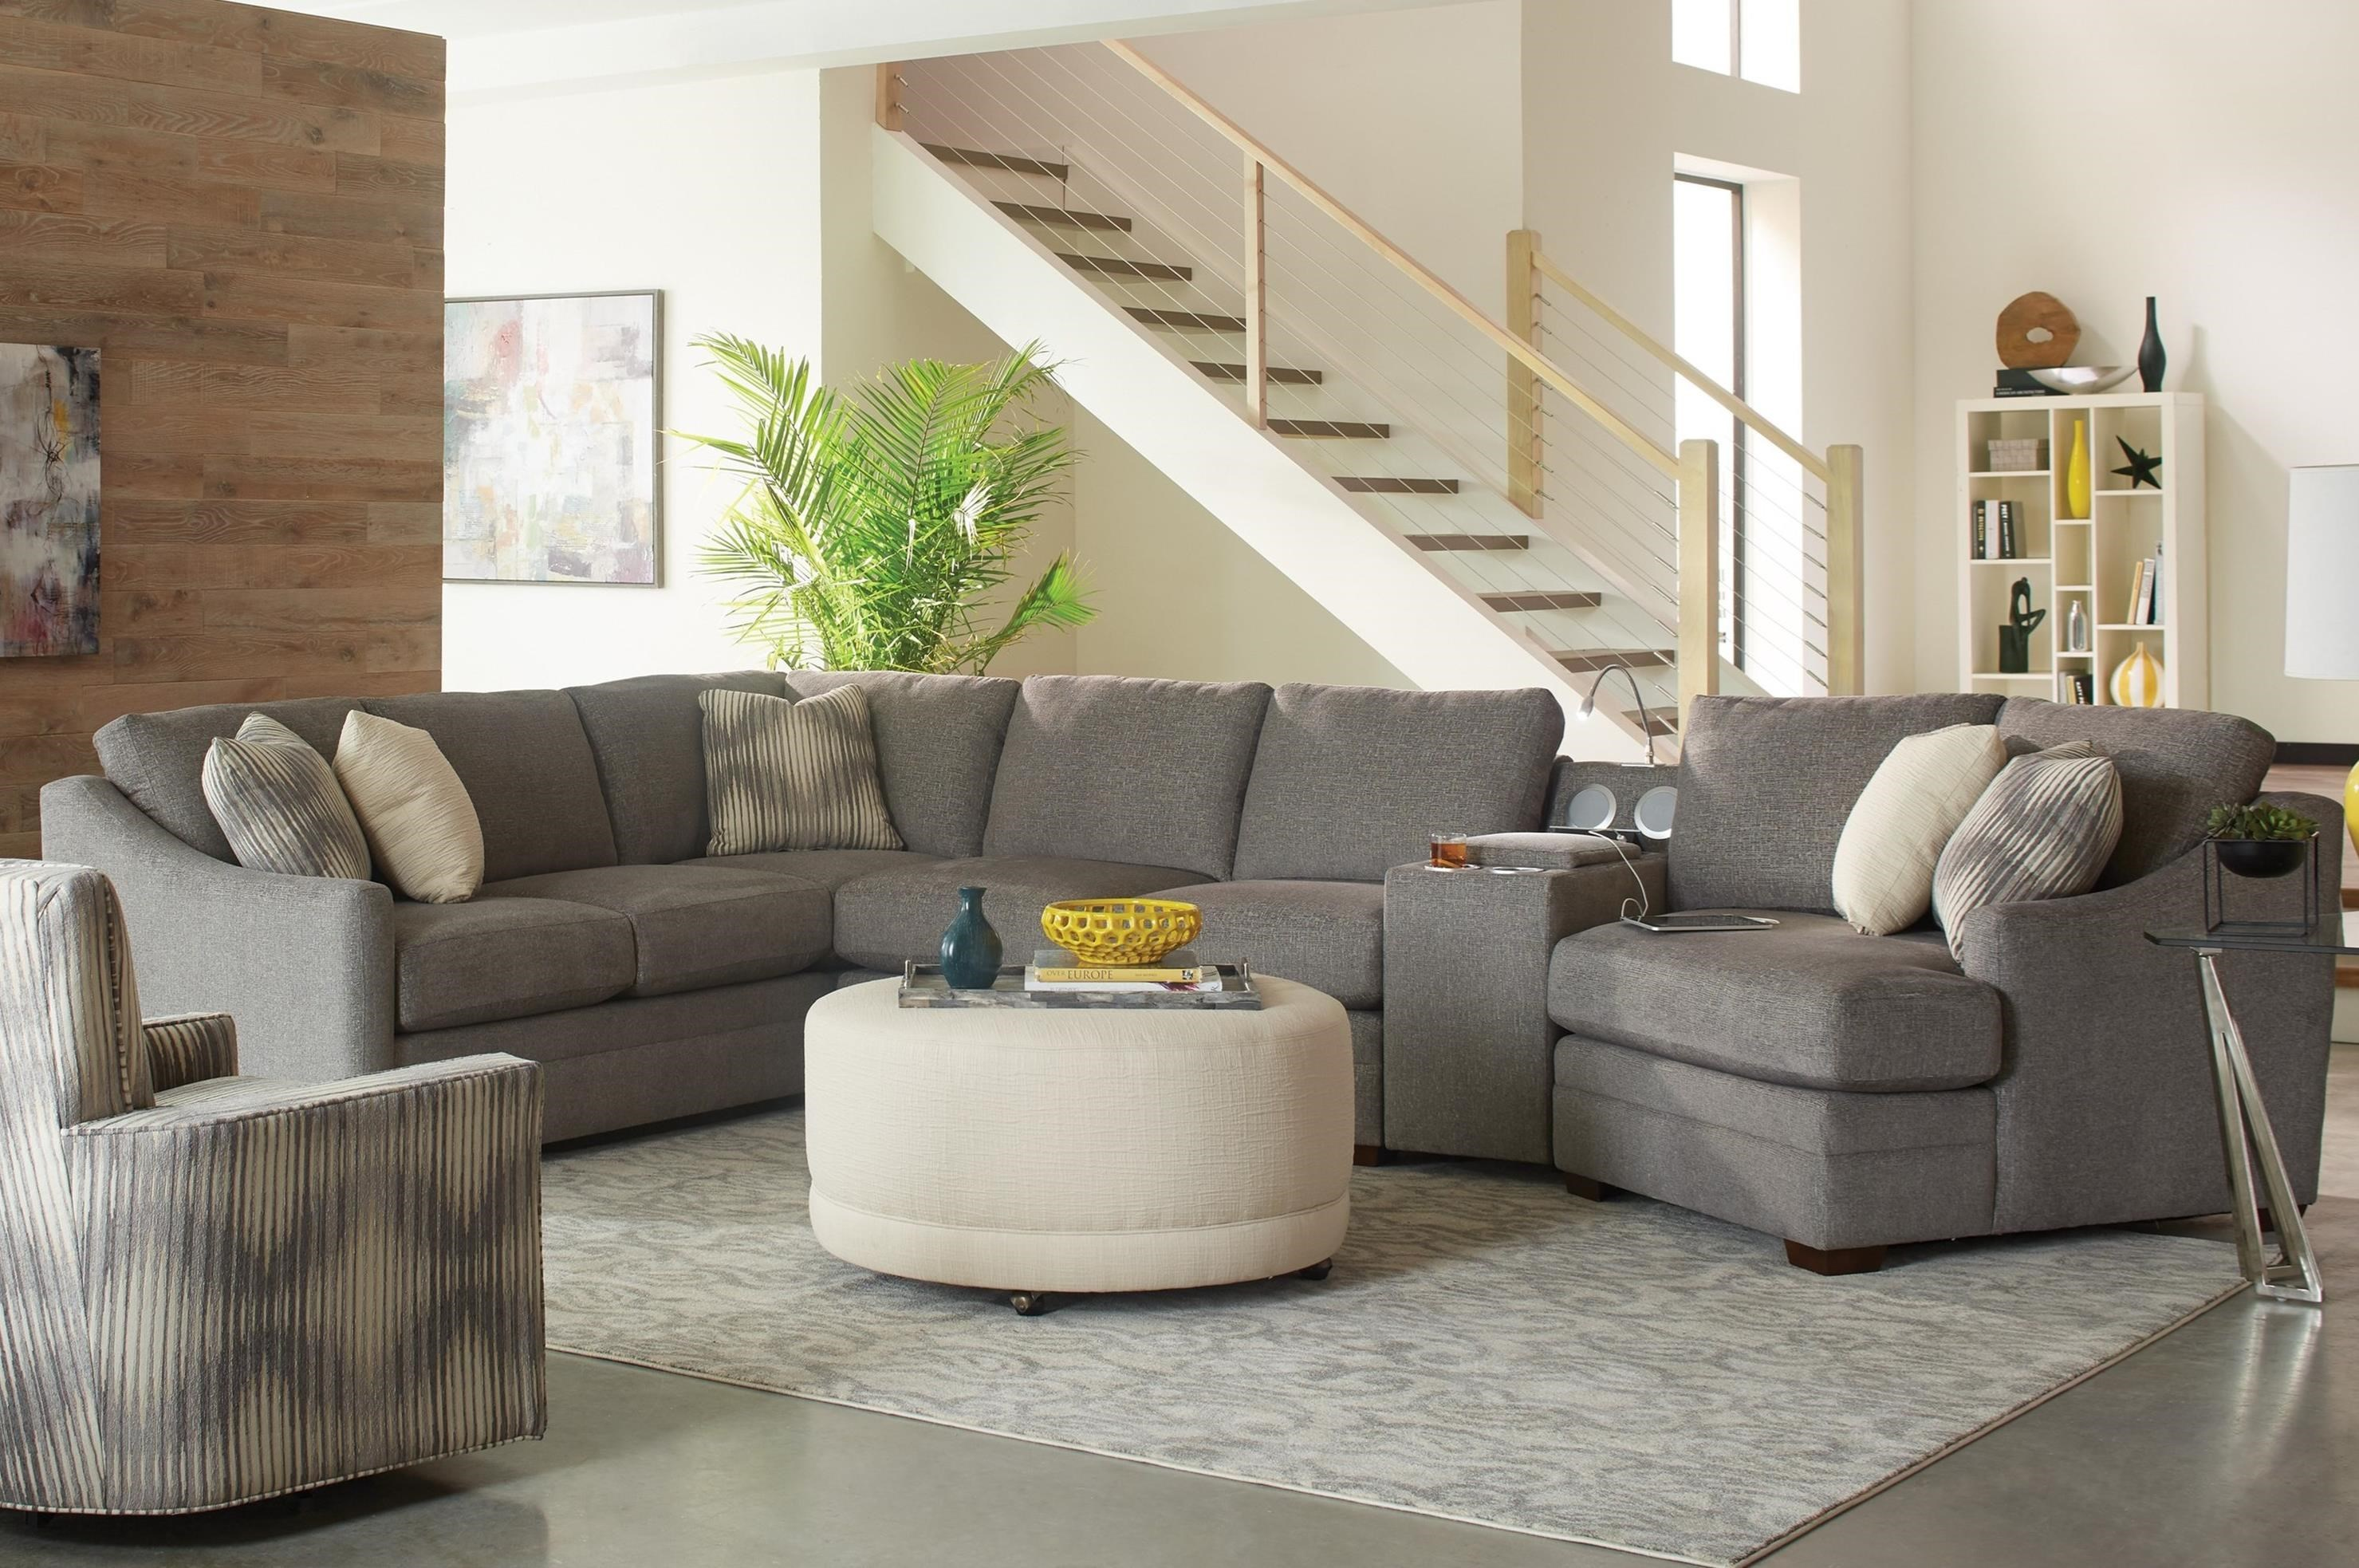 Genial Craftmaster F9 Design Options4 Pc Sectional Sofa W/ Power Console ...